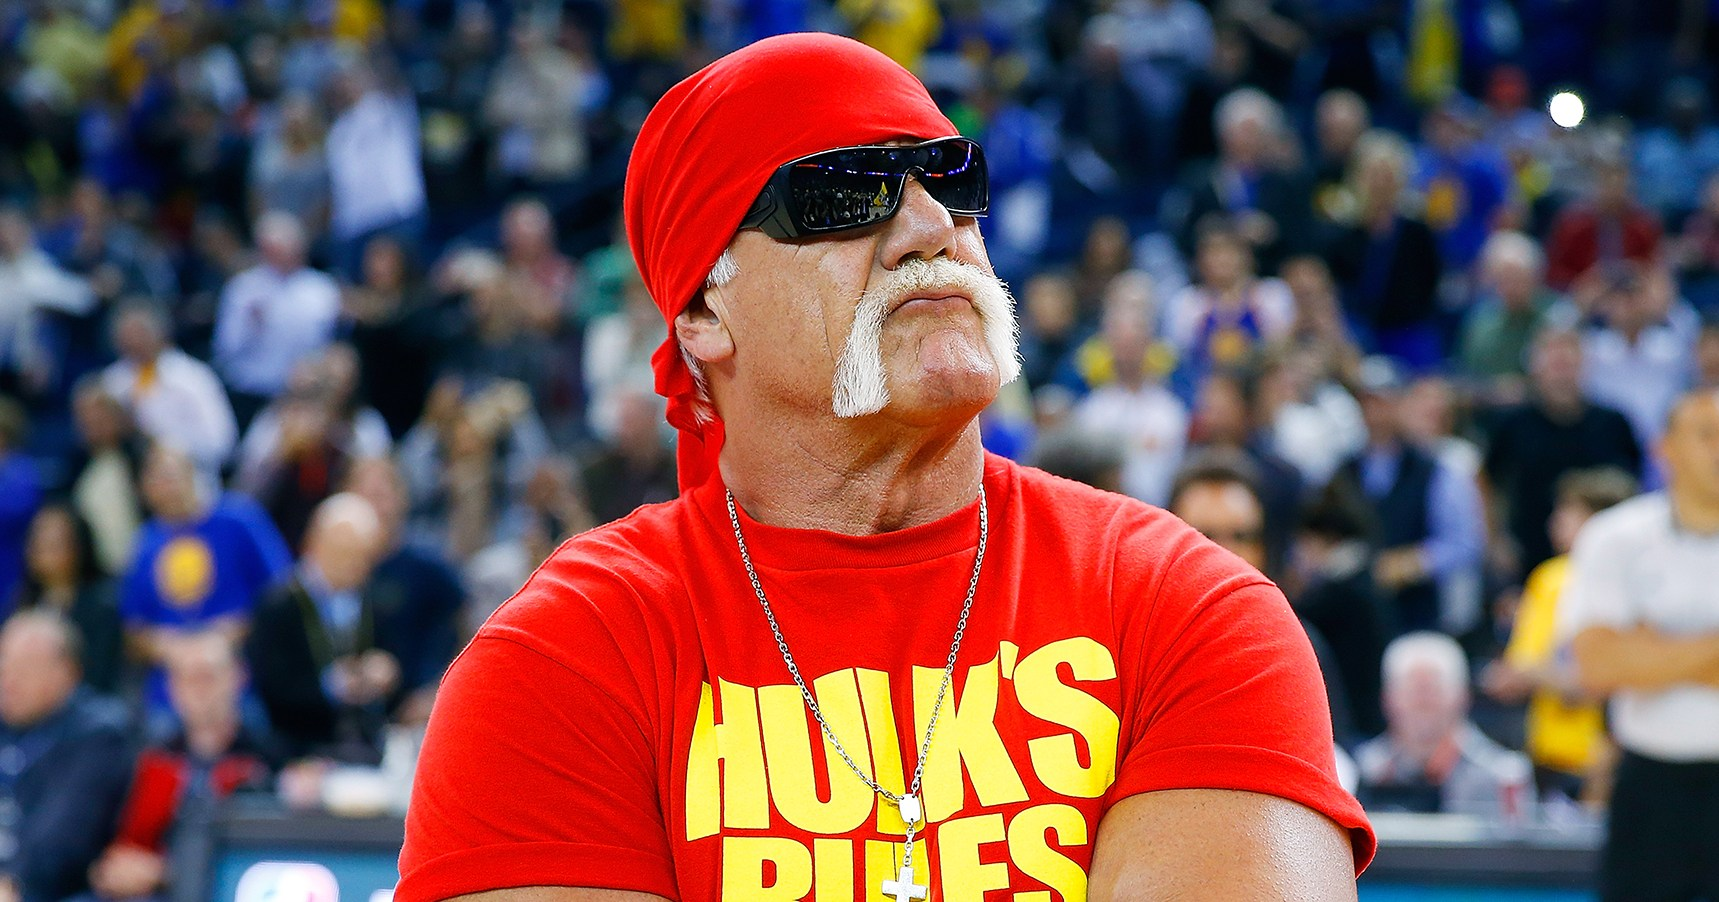 He's Back! Hulk Hogan Returning to WWE's 'Monday Night Raw'